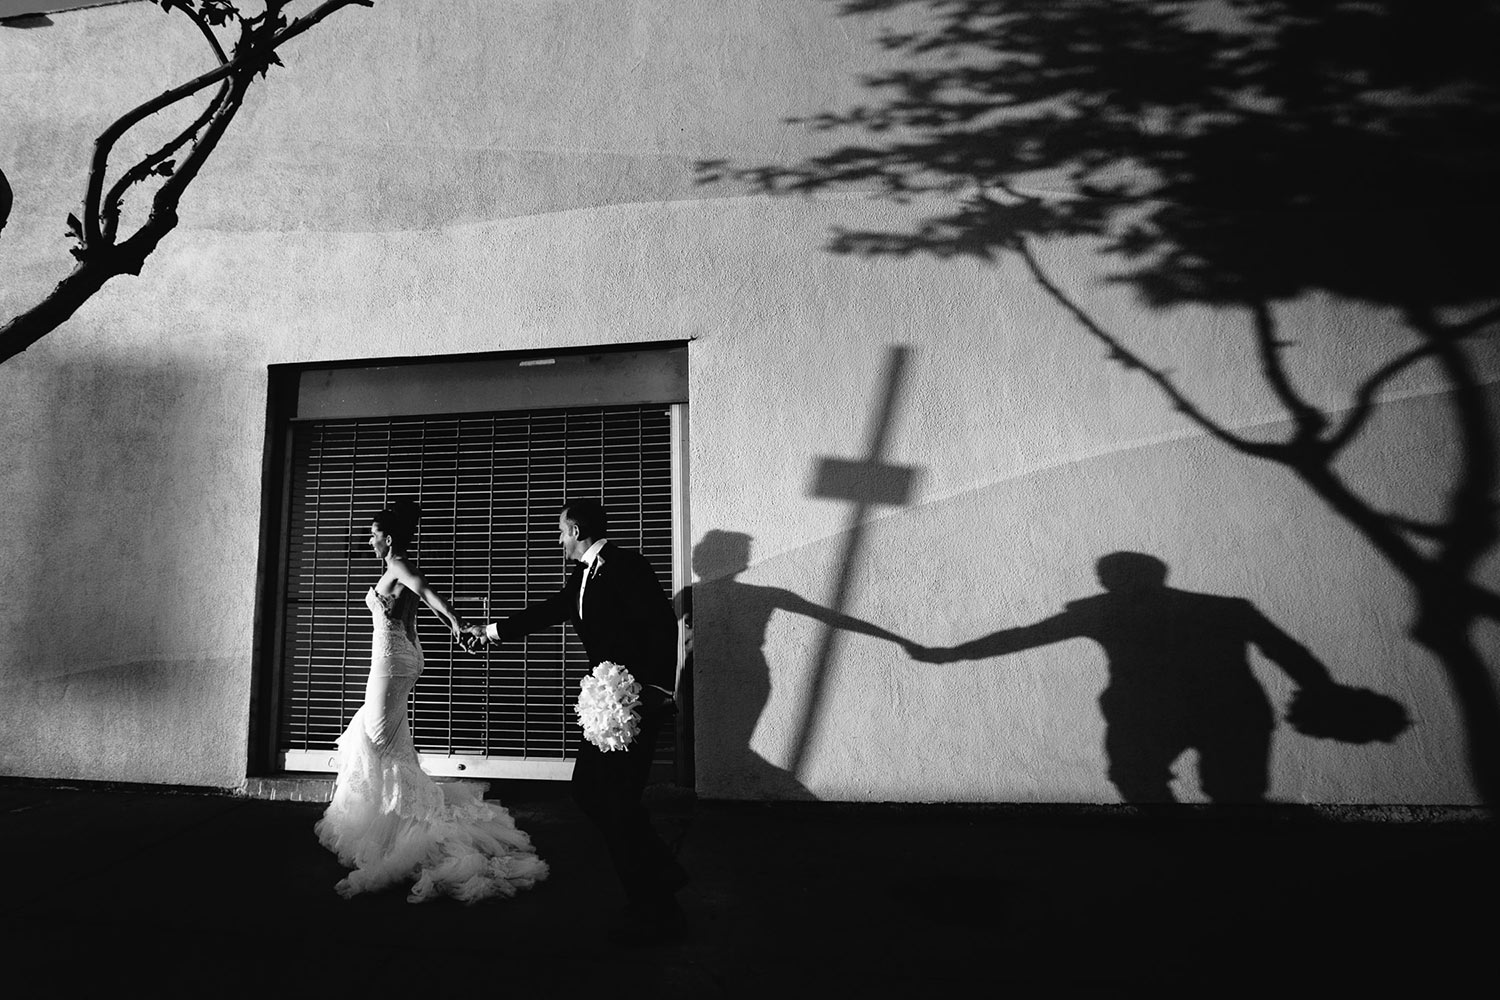 Bride and groom in low evening light with a cross shadow, by Callaway Gable